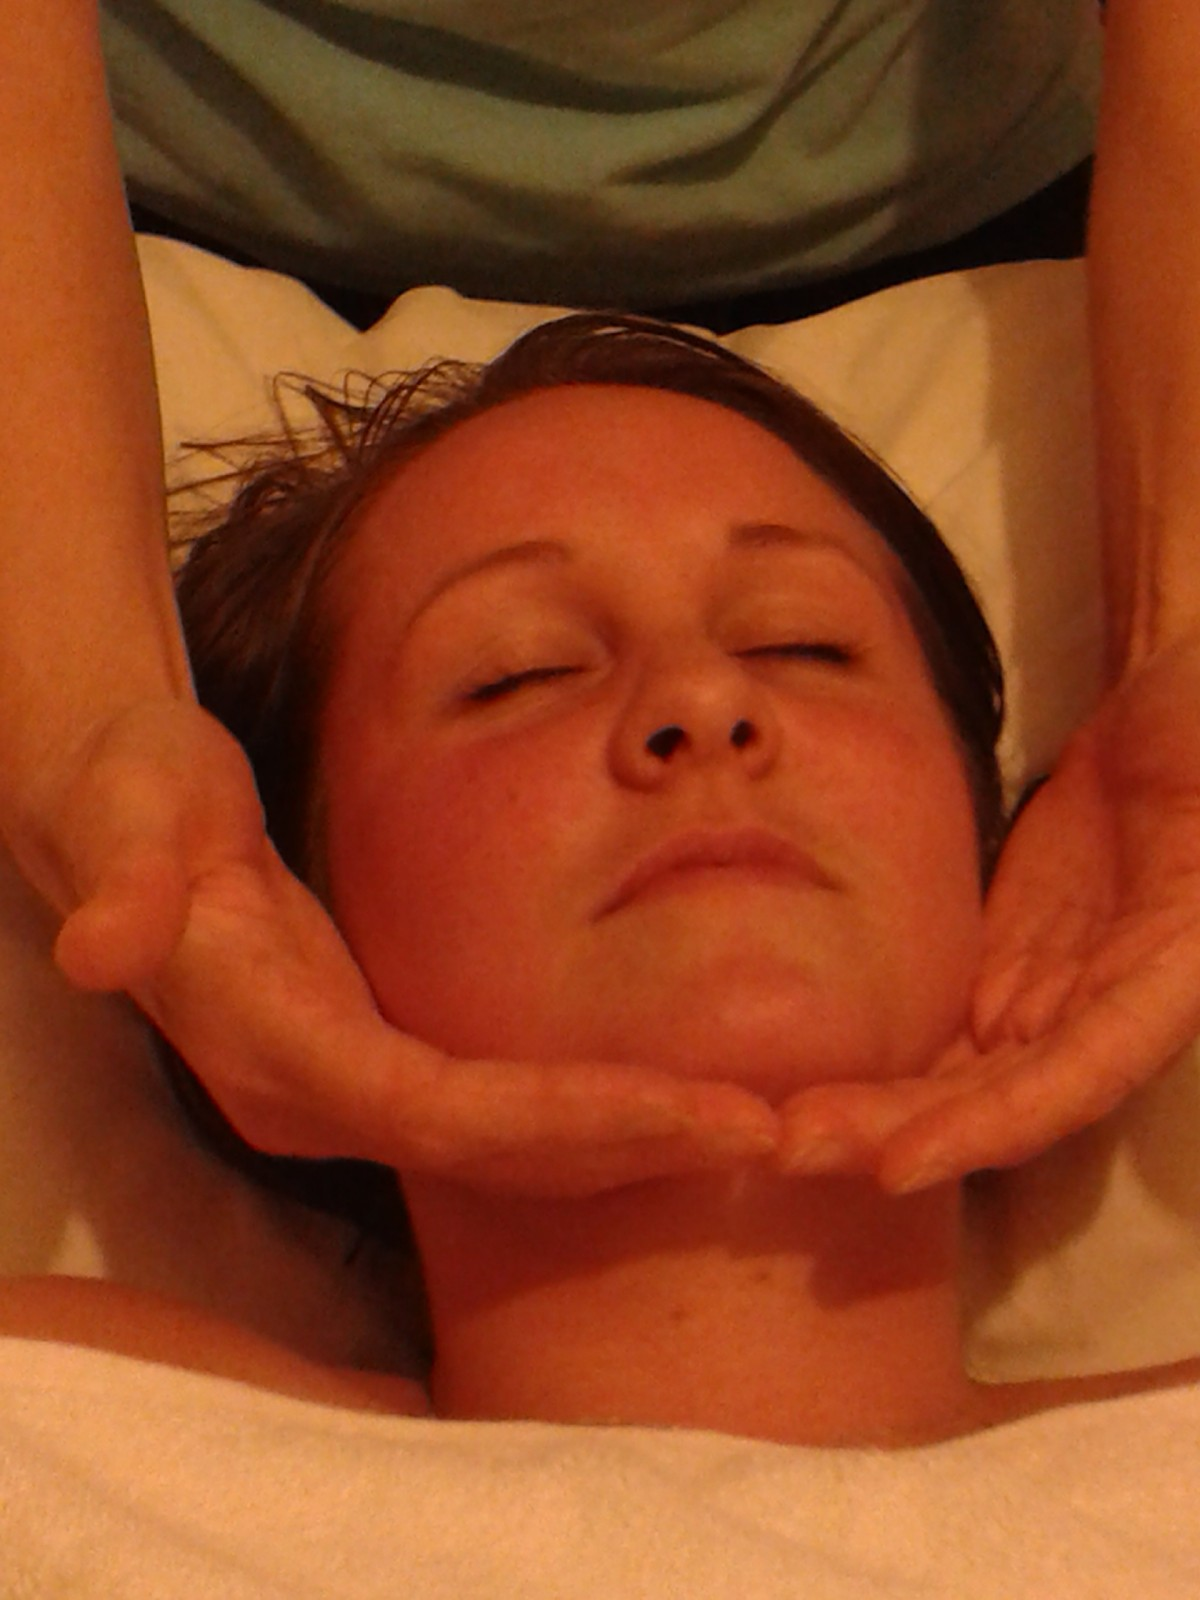 Taylored Massage face in hands